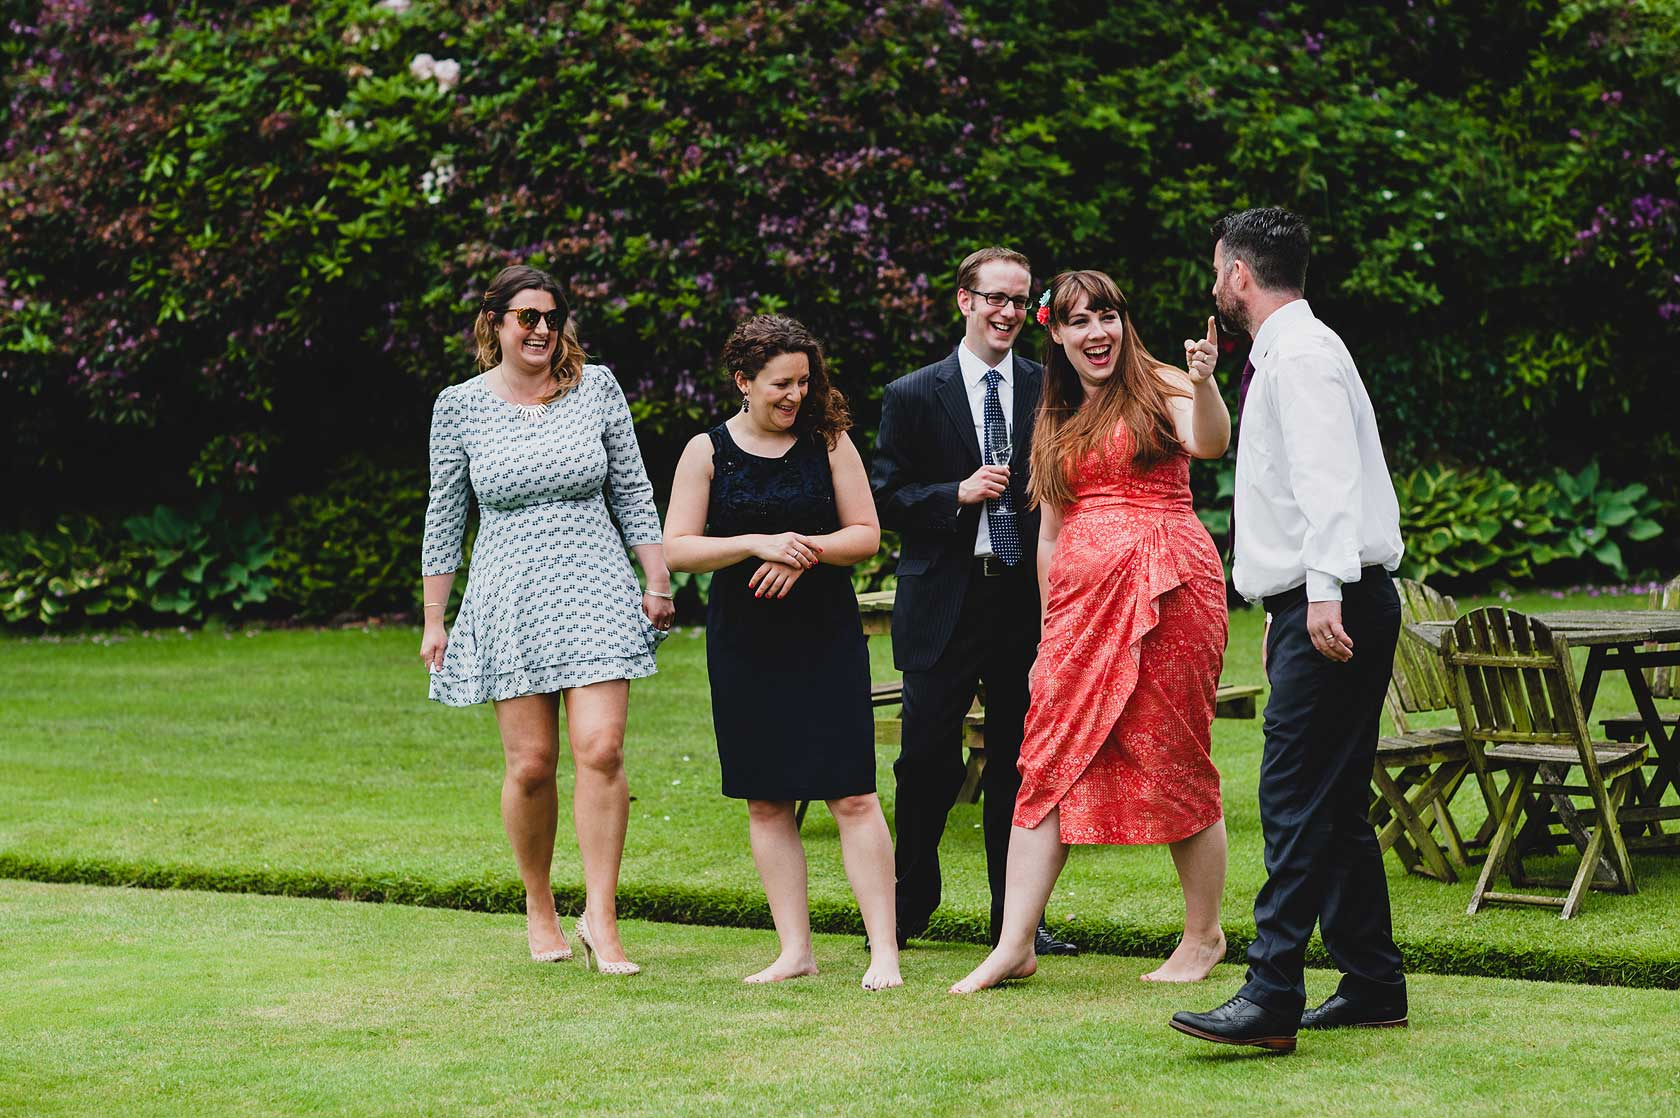 Eaves Hall Wedding in Clitheroe